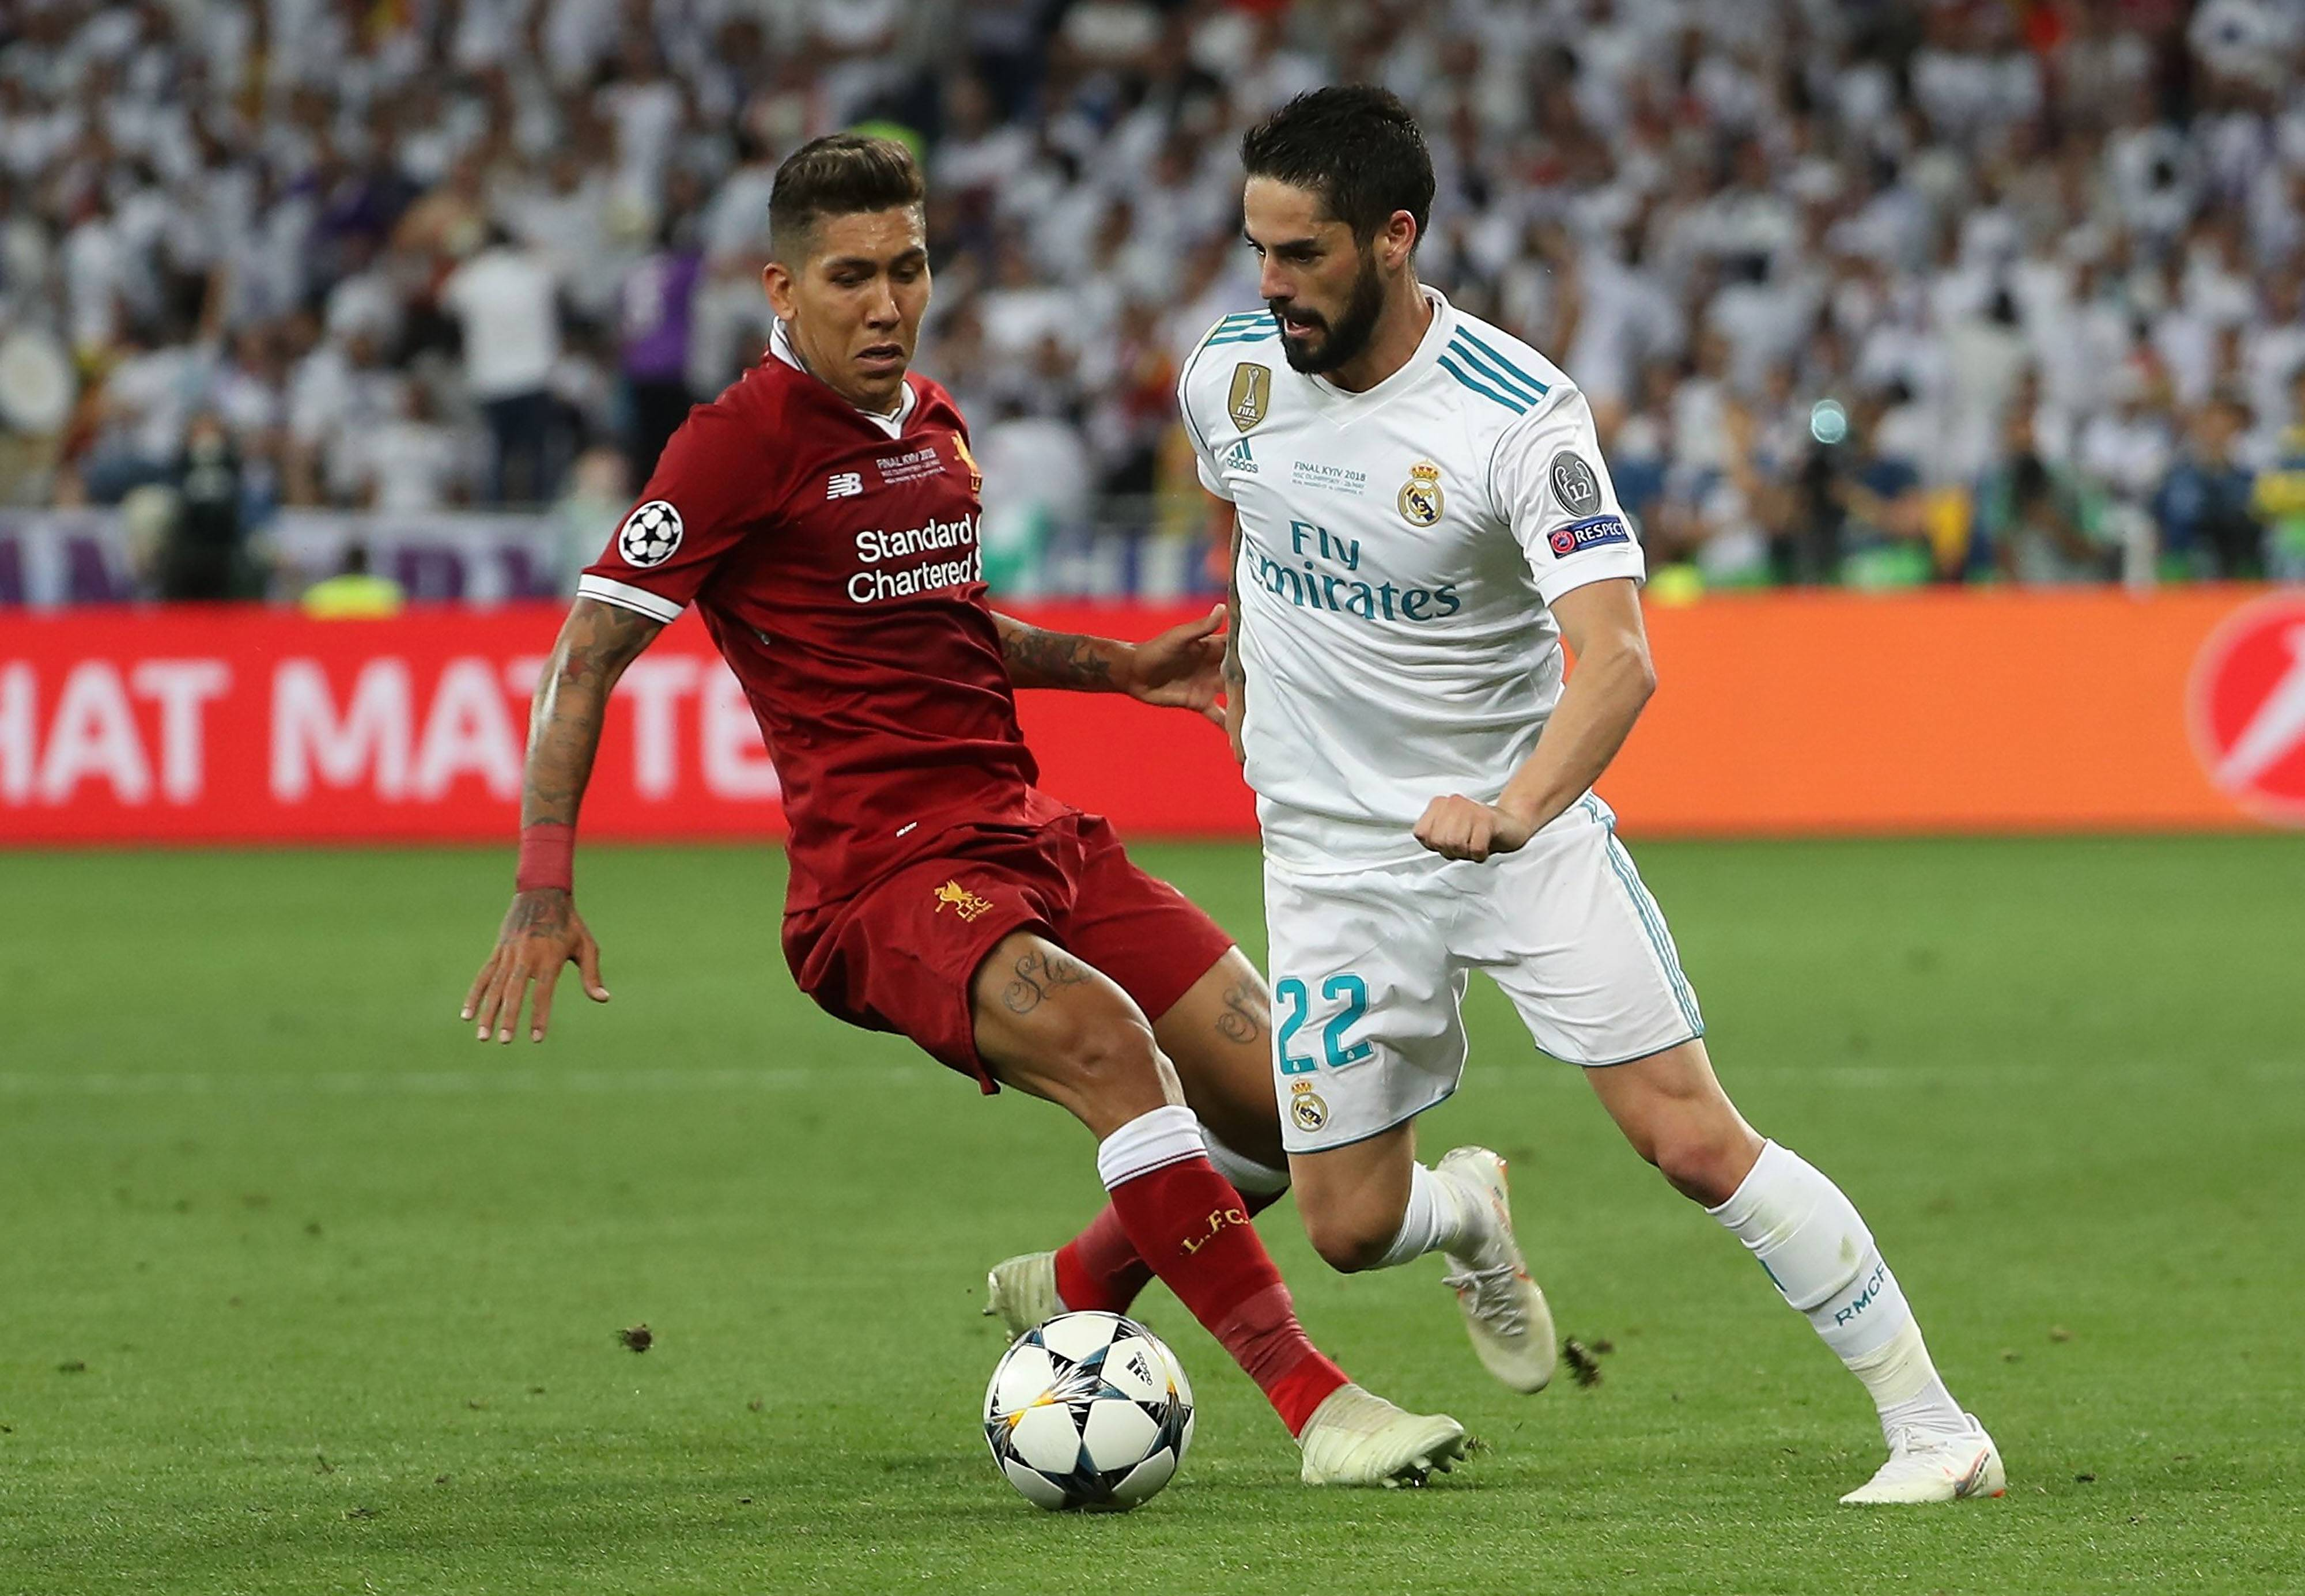 Giant Real Madrid dominates giant Liverpool